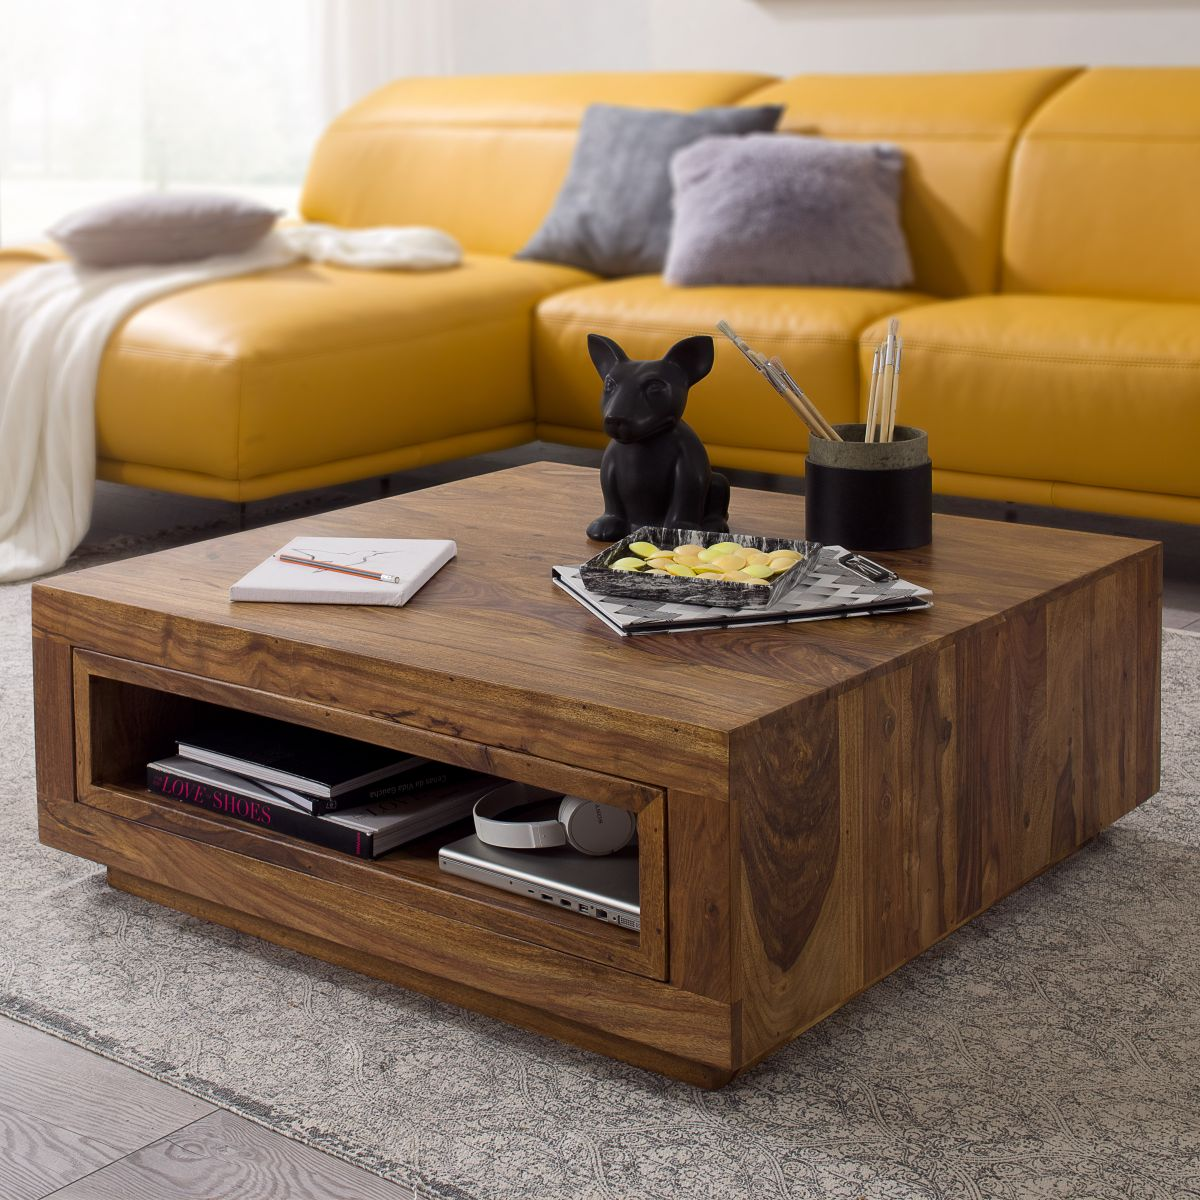 massiver couchtisch flora holz sheesham 88 x 88 x 35 cm mit schublade ausziehbar. Black Bedroom Furniture Sets. Home Design Ideas